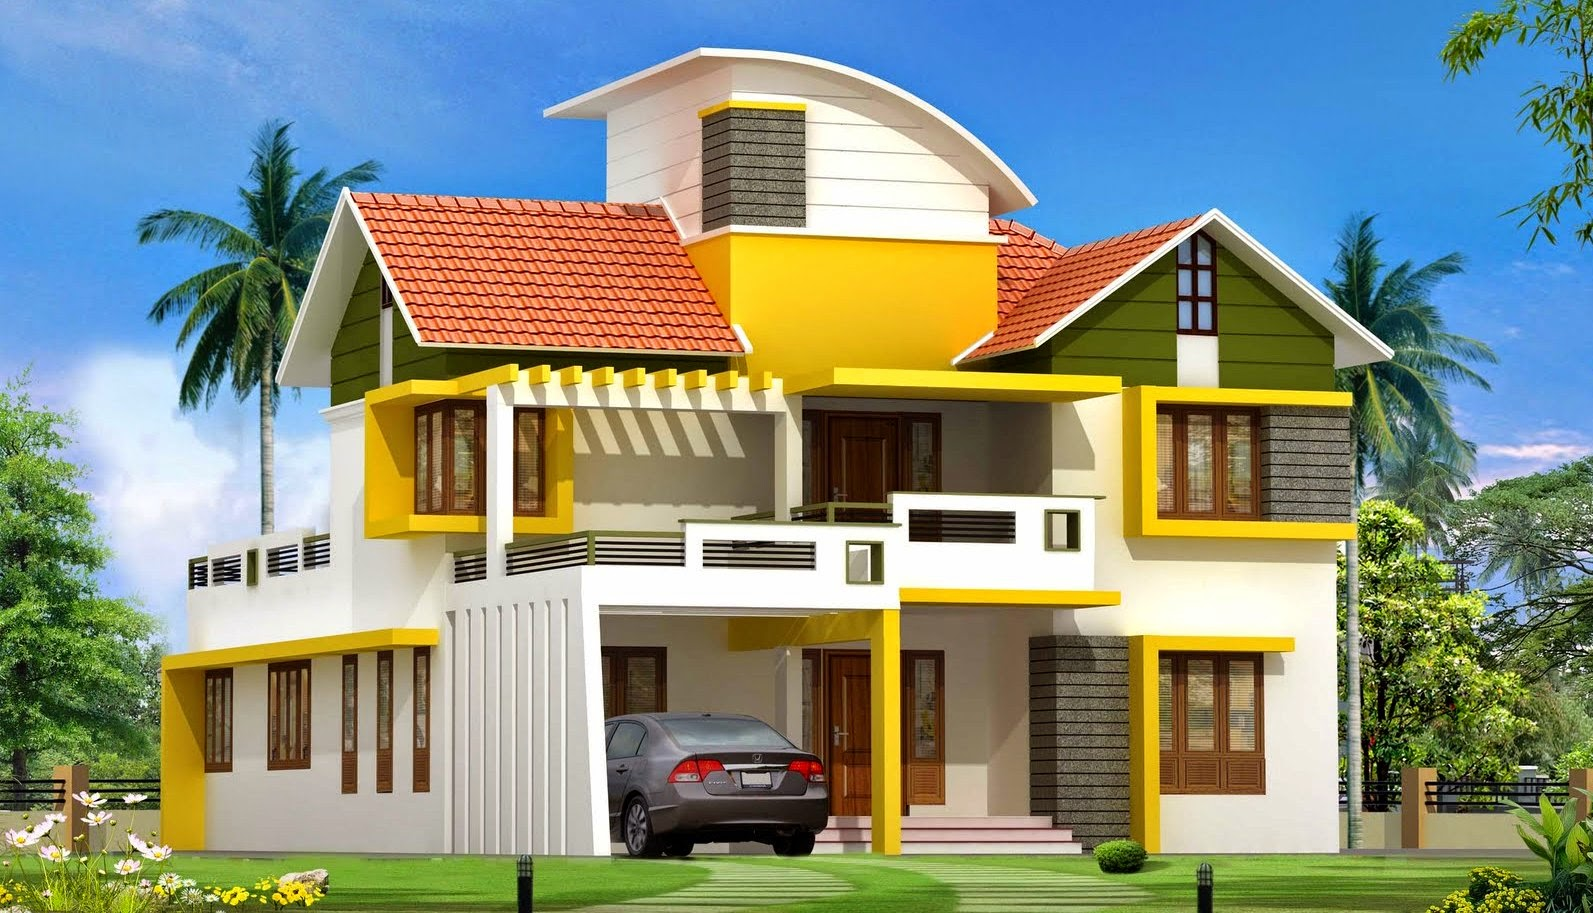 design new home. Kerala Home Design New Modern Houses home kitchen interior design photos ideas  full